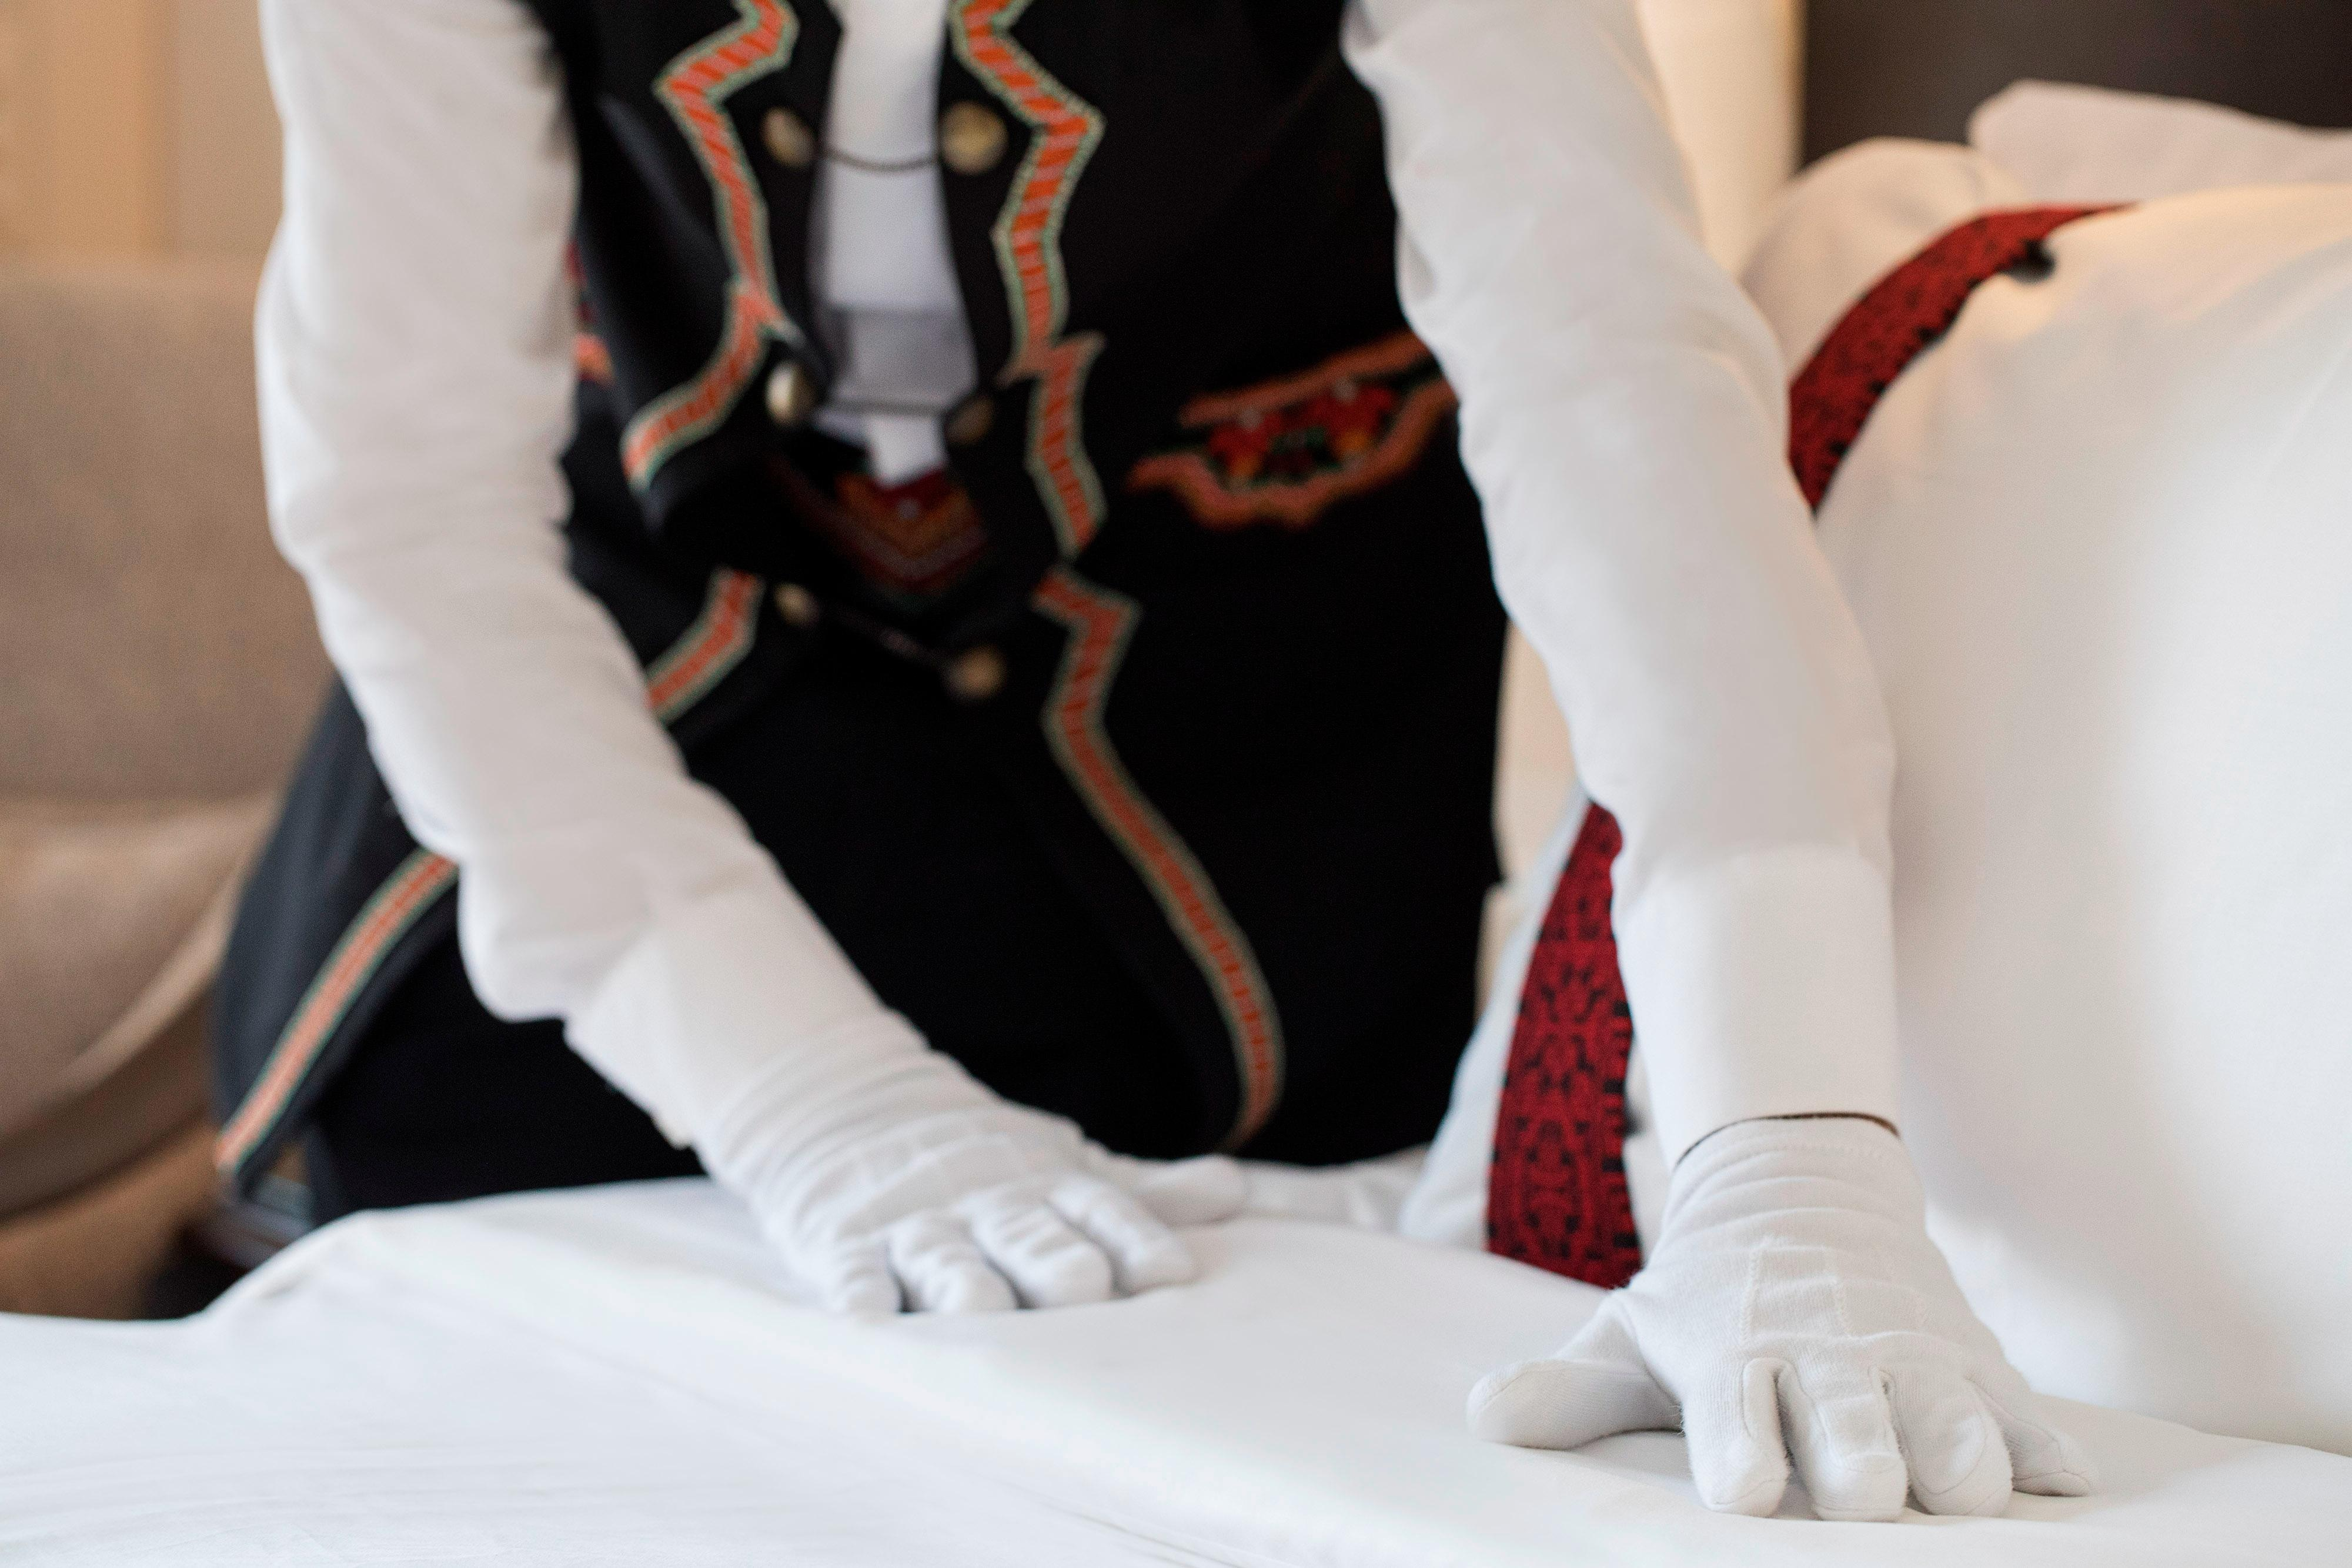 Our 24-hour butler service assists with any special requests from shoe shining to unpacking services.